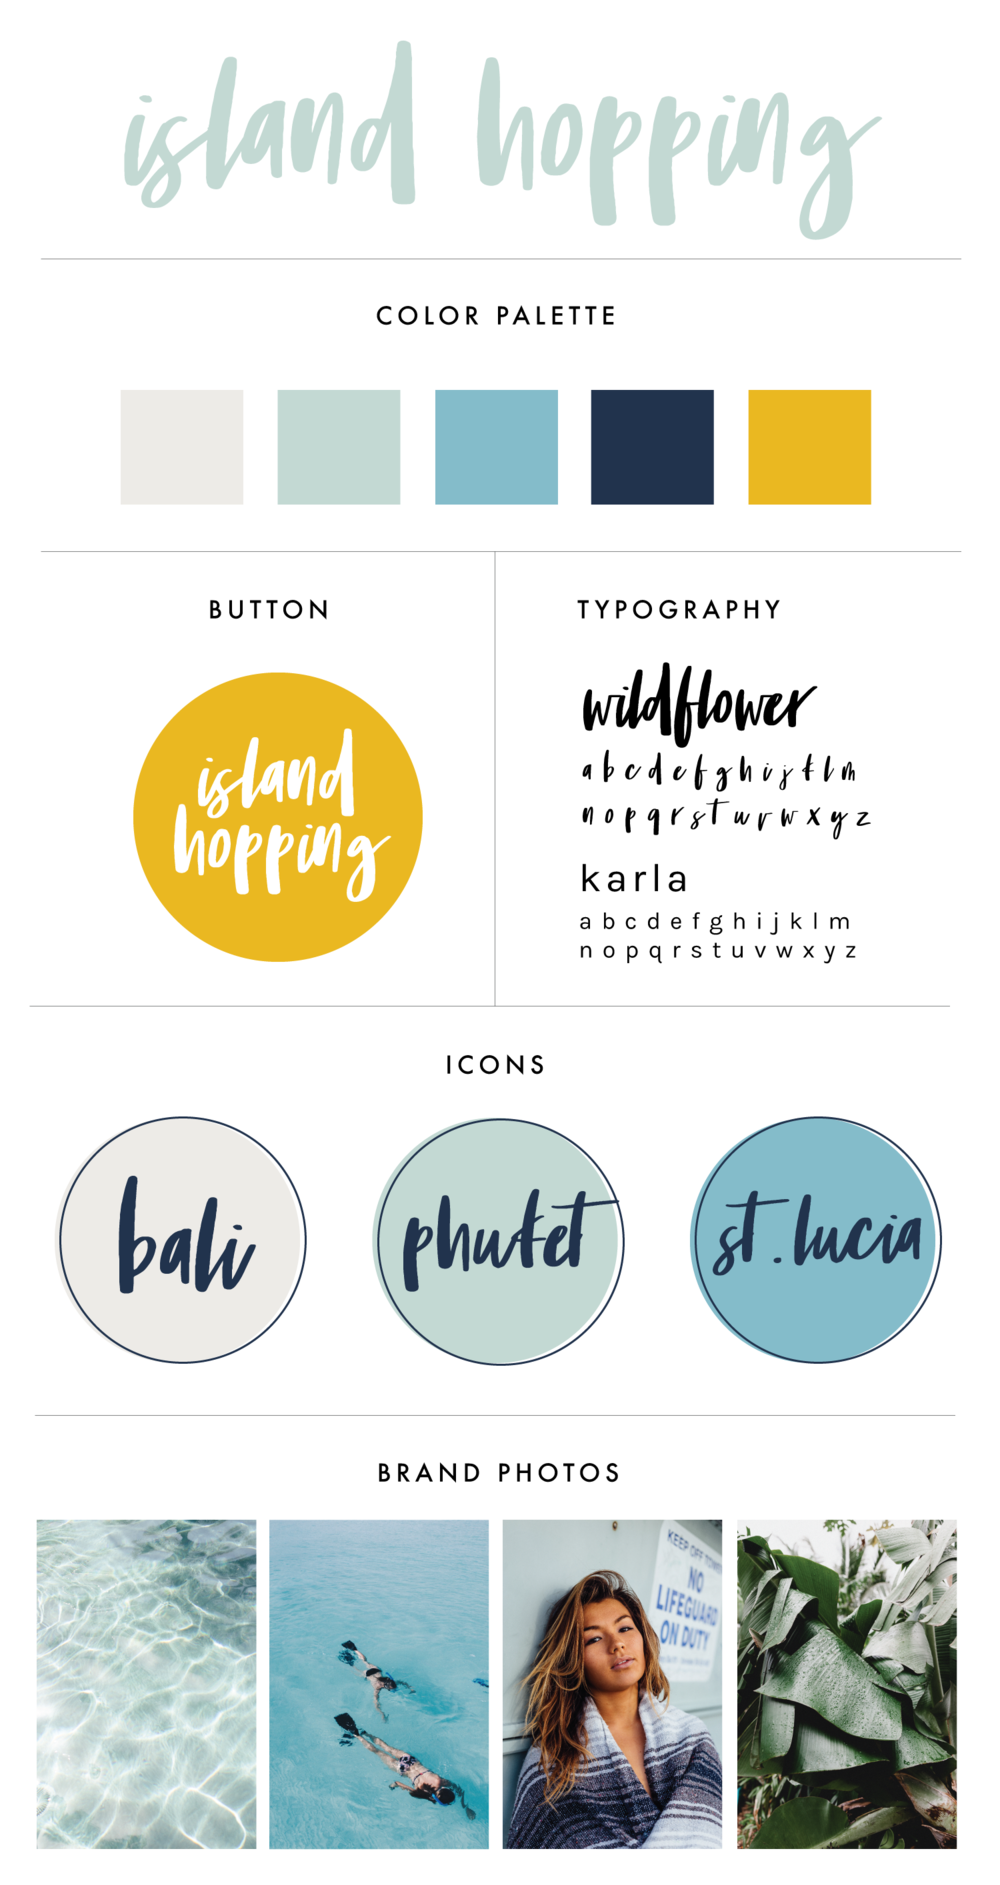 Premade Branding & Logo Kit | Branding Kit for Travel Bloggers | Travel Inspiration | Travel Photographers and Bloggers | Branding Design | Brand Identity | Branding Kits | Branding For Businesses | Logo Design | Brand Design | Branding | Brand Board | Branding For Creative Entrepreneurs and Small Business Owners | Island Travel Brand